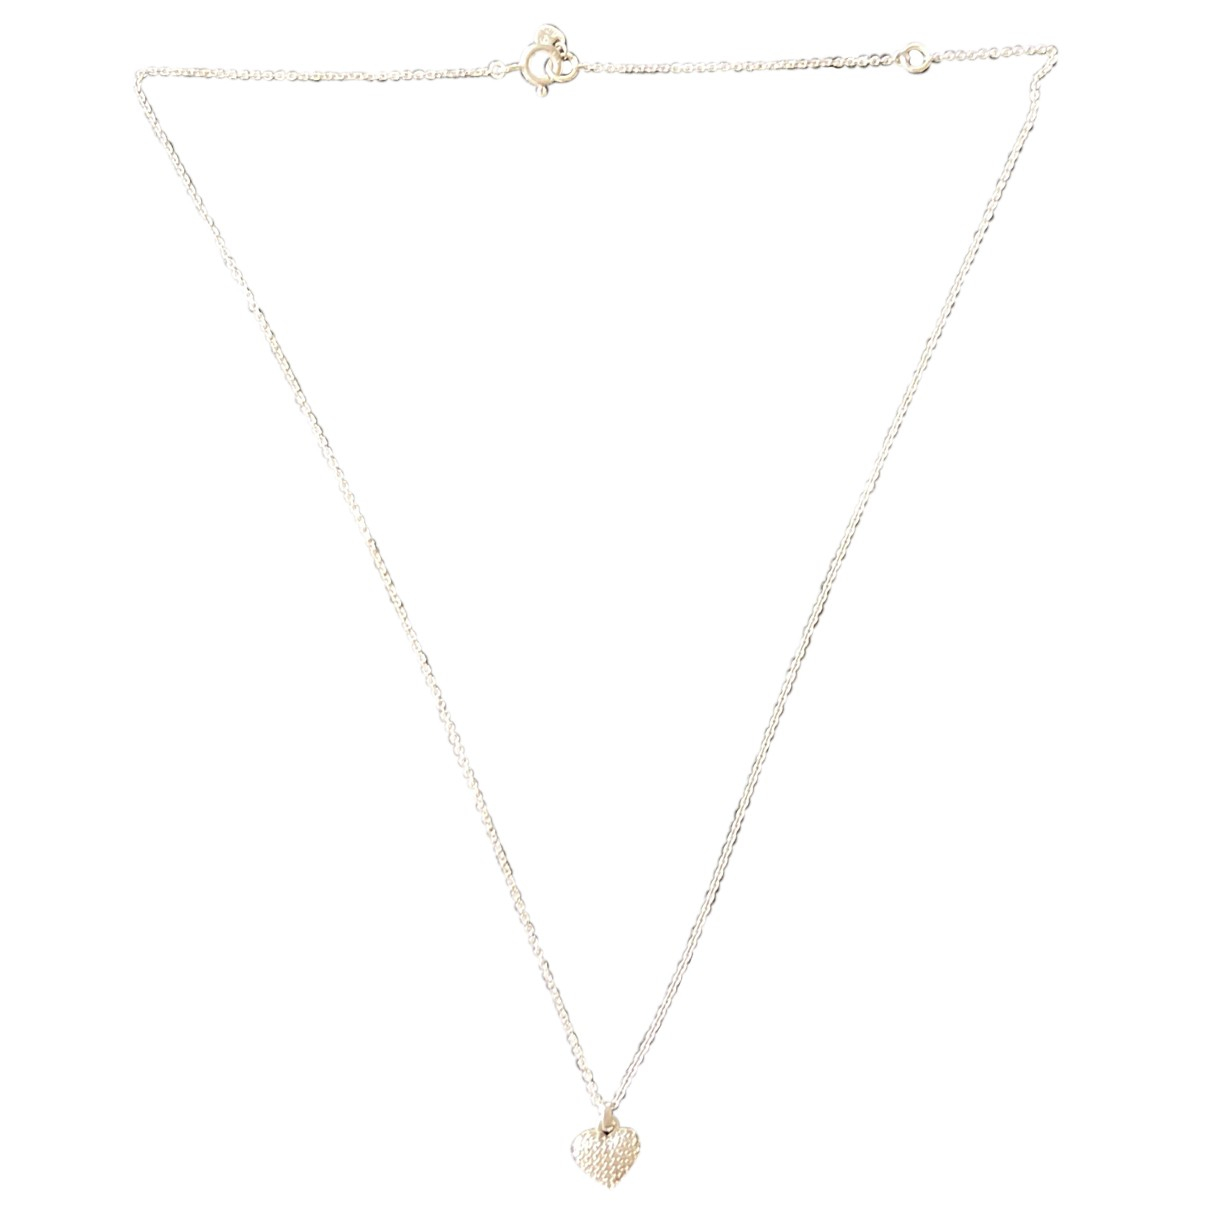 Michael Kors N Silver Silver Long necklace for Women N